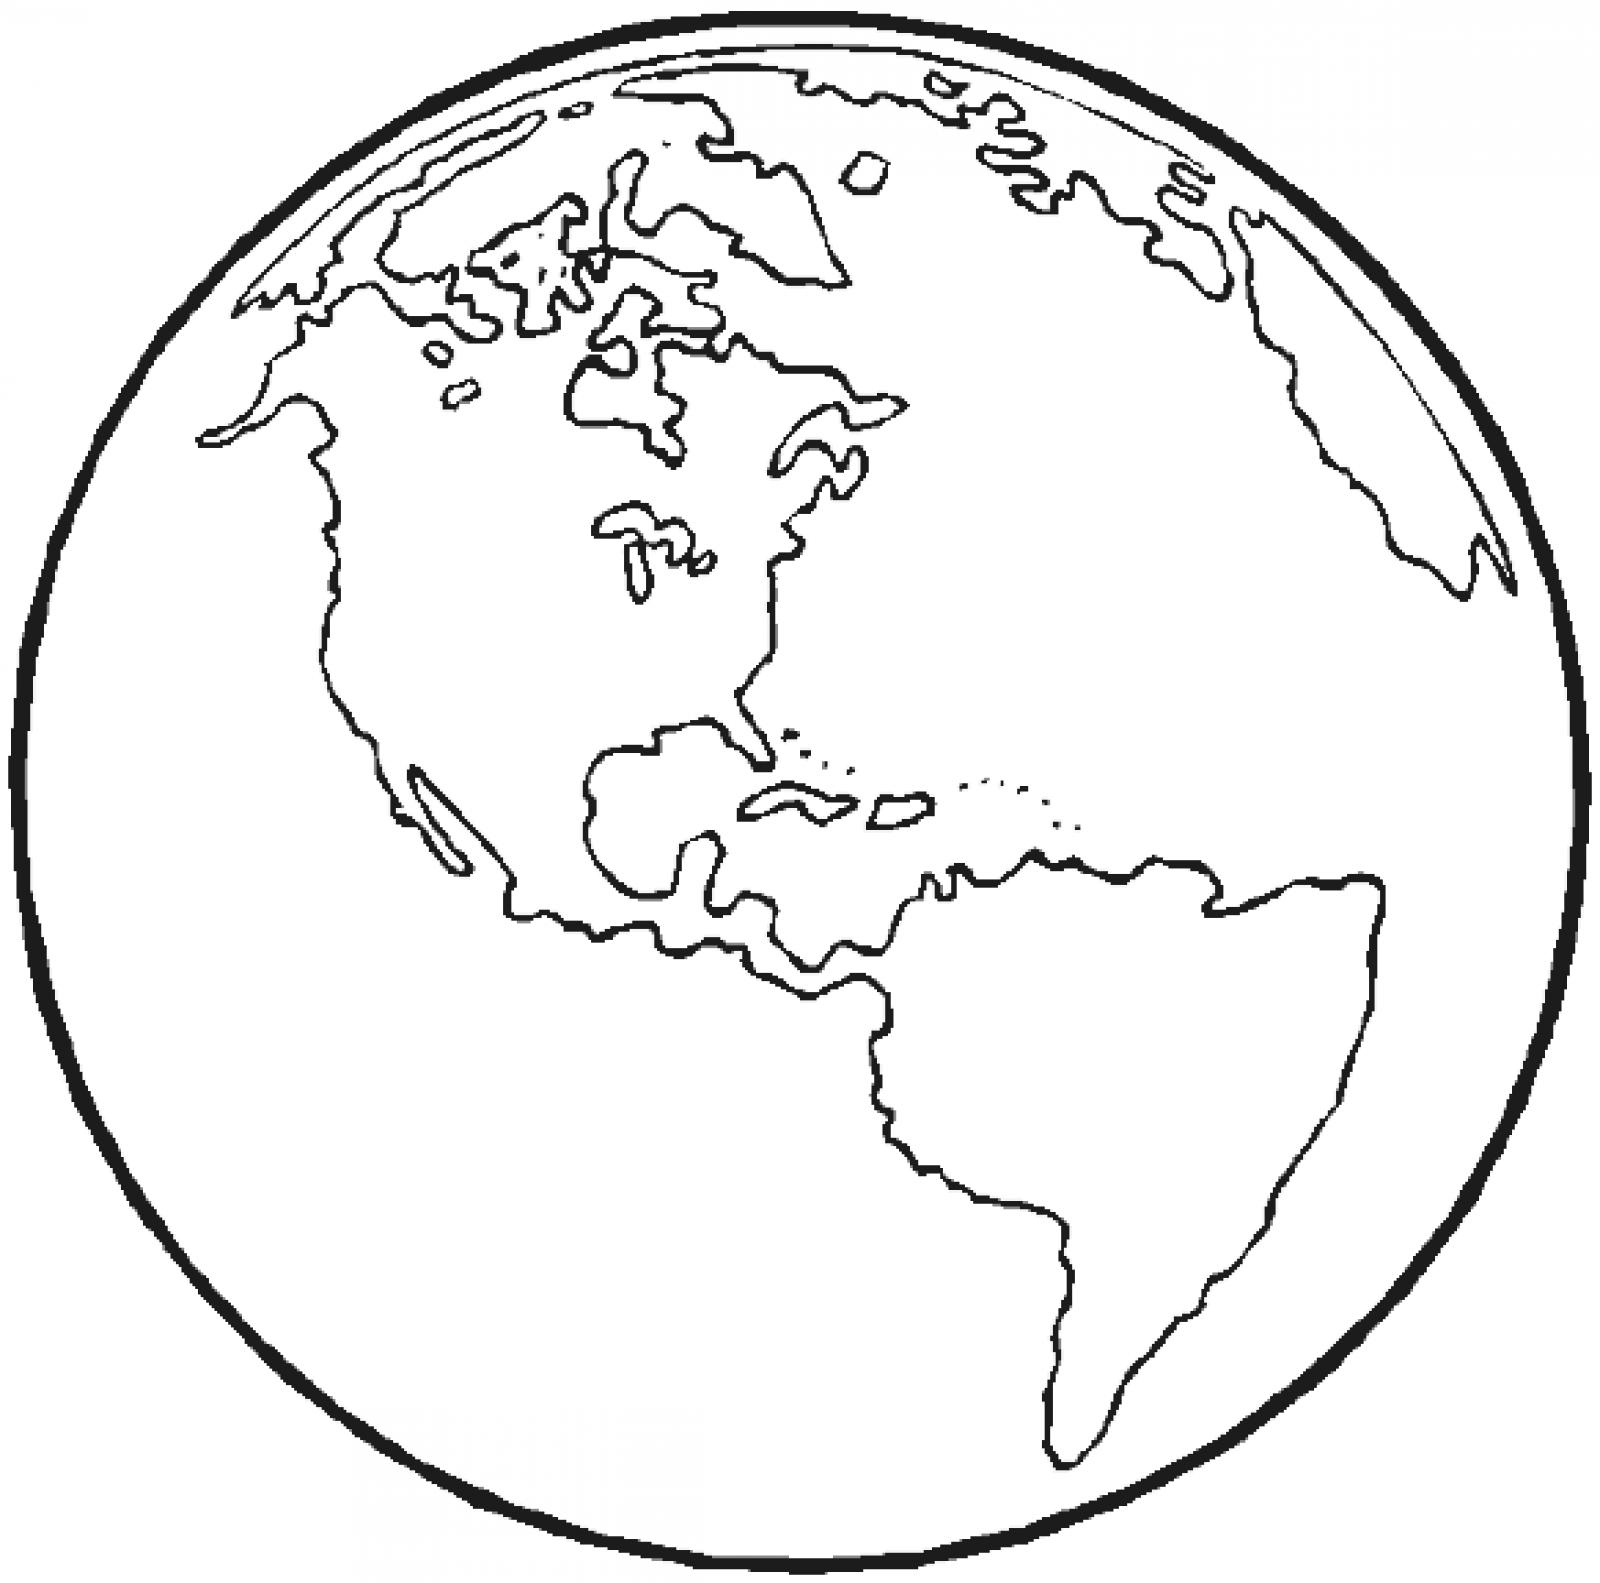 Free Printable Earth Coloring Pages For Kids | Chainimage - Free Printable Earth Pictures